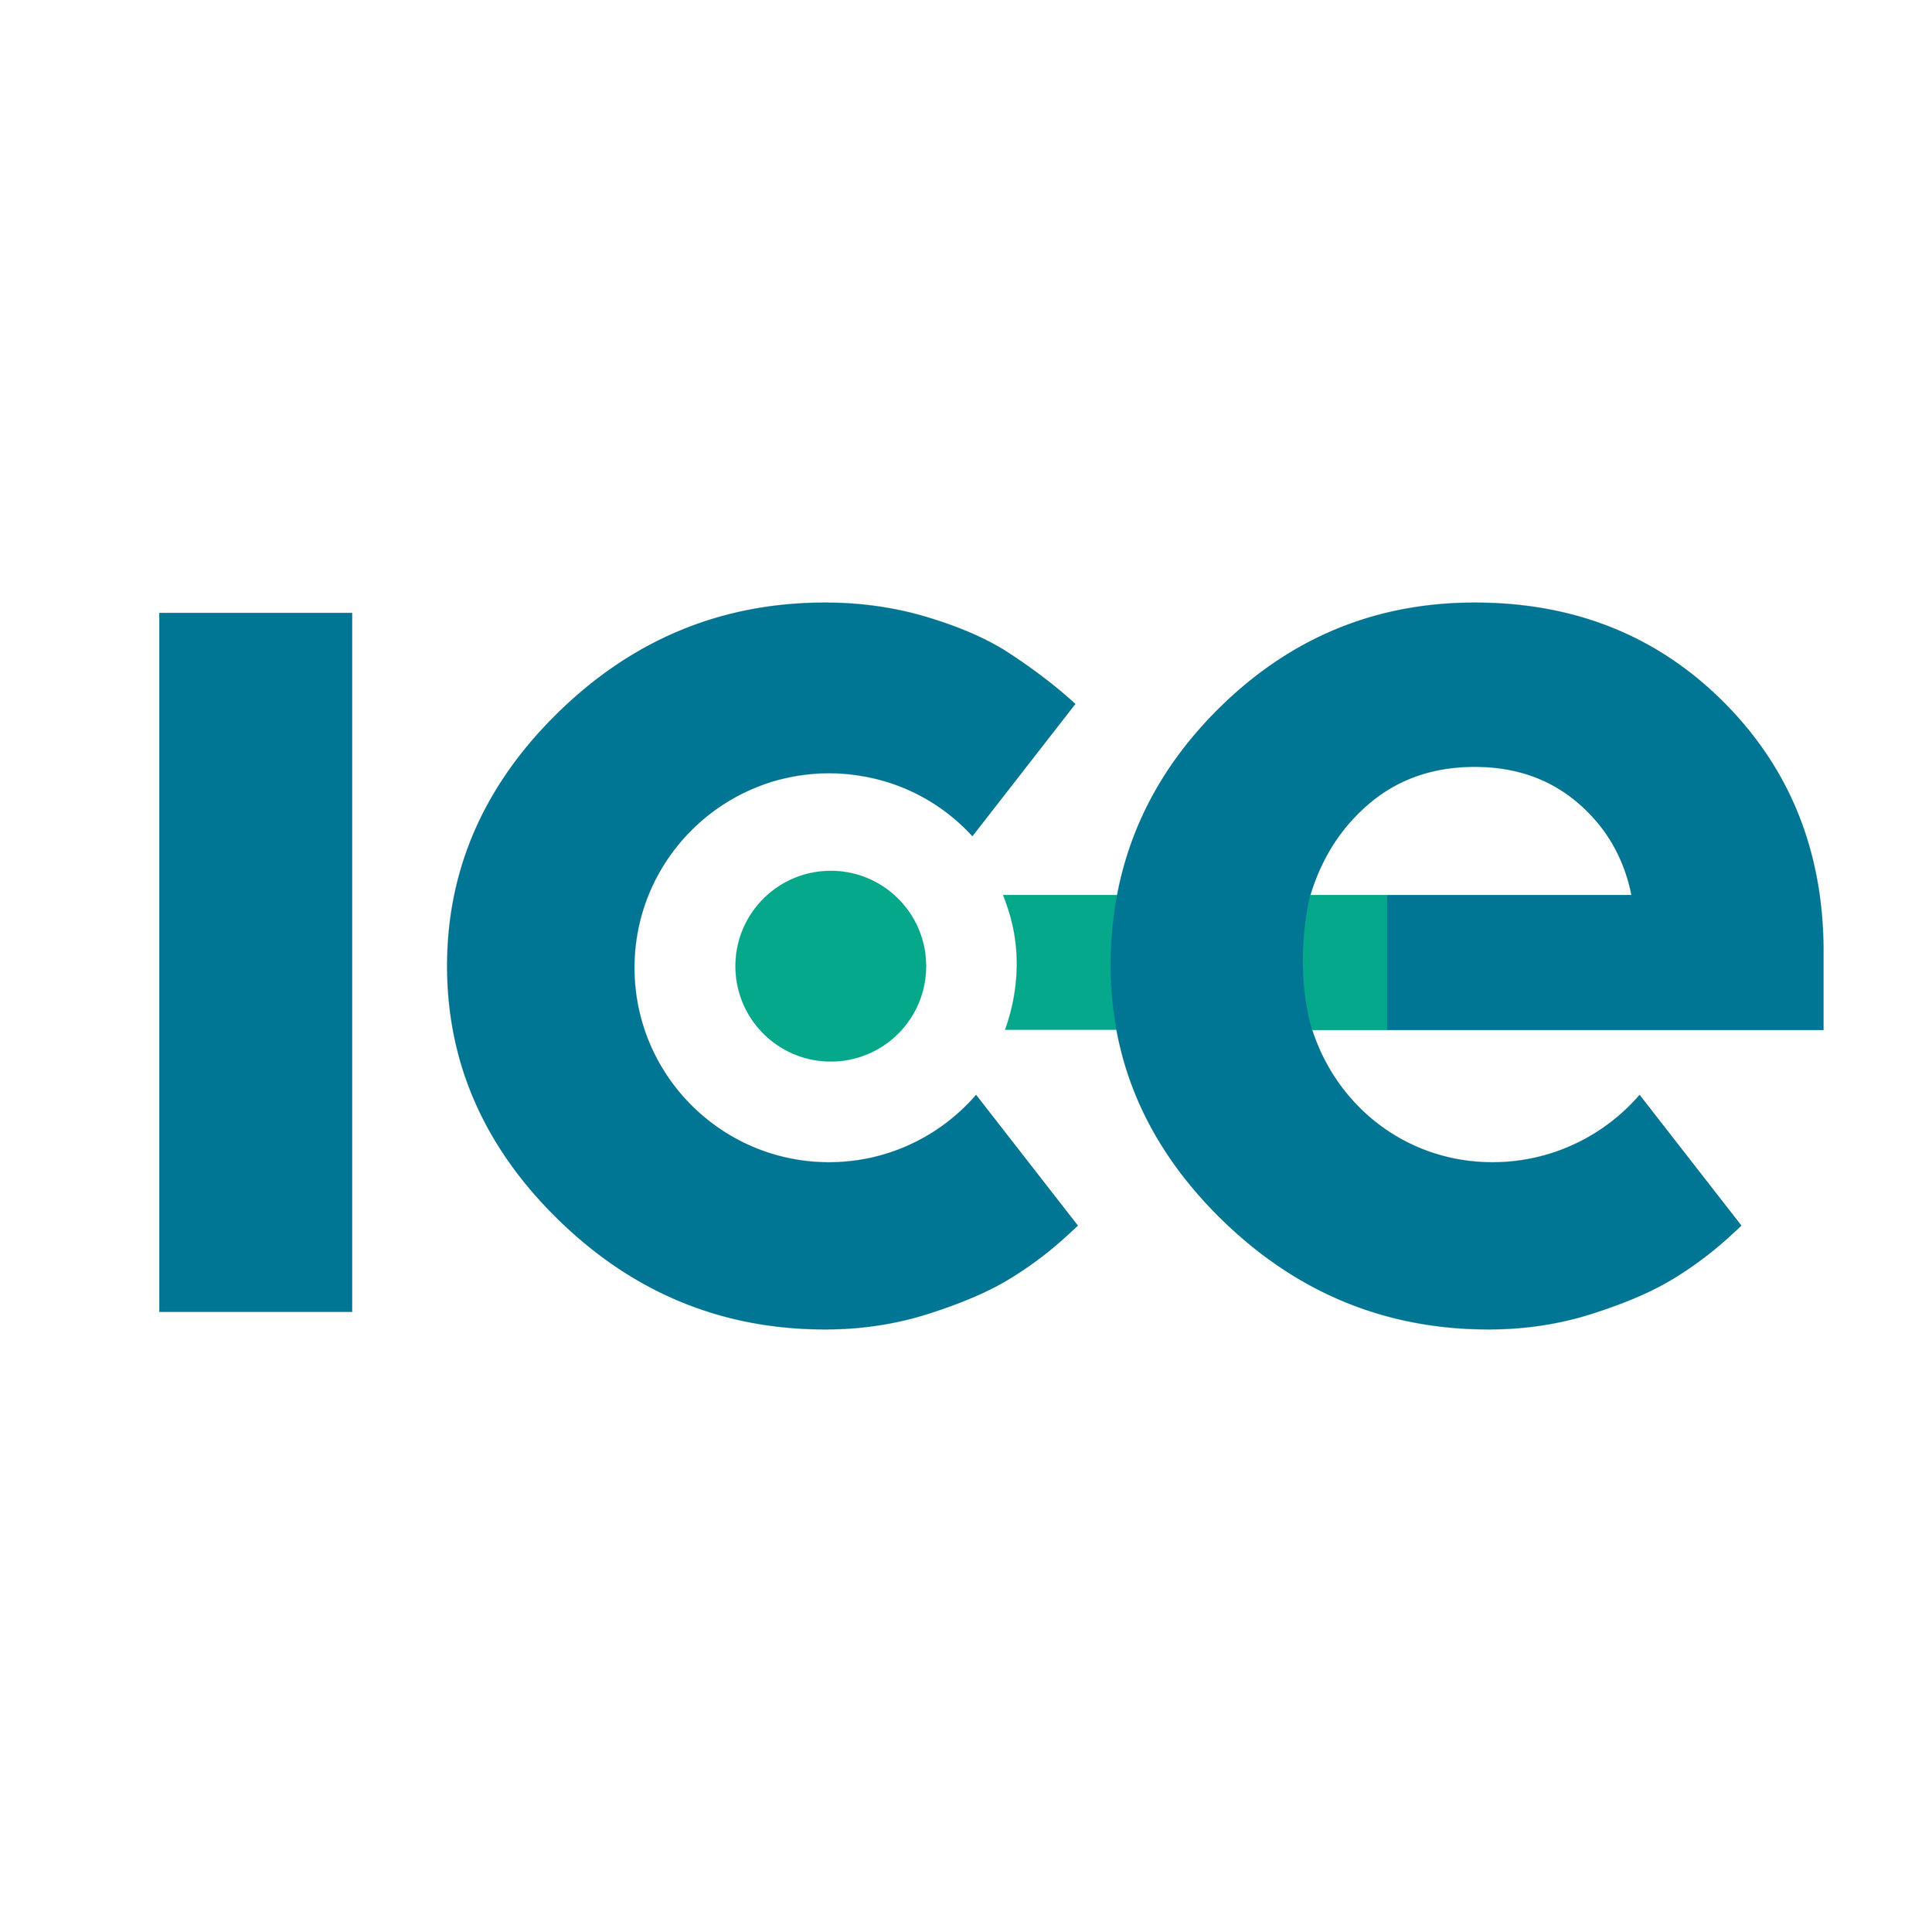 ICE_logo_v02_CC_version HM 1 with padding.jpg